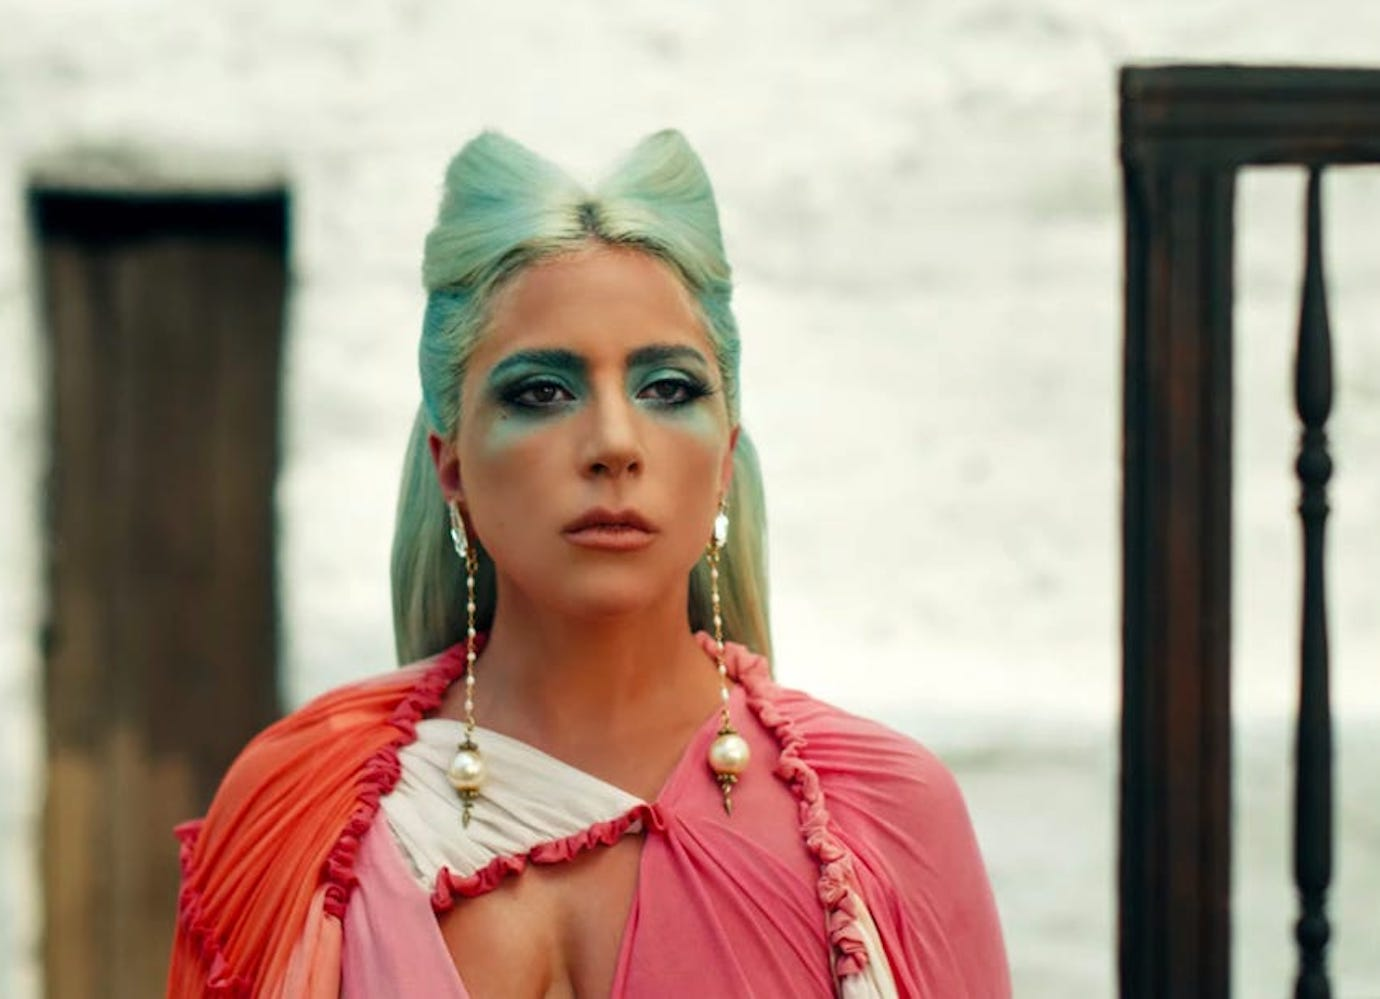 Lady Gaga's latest music video is a tribute to arthouse Armenian filmmaker Sergei Parajanov